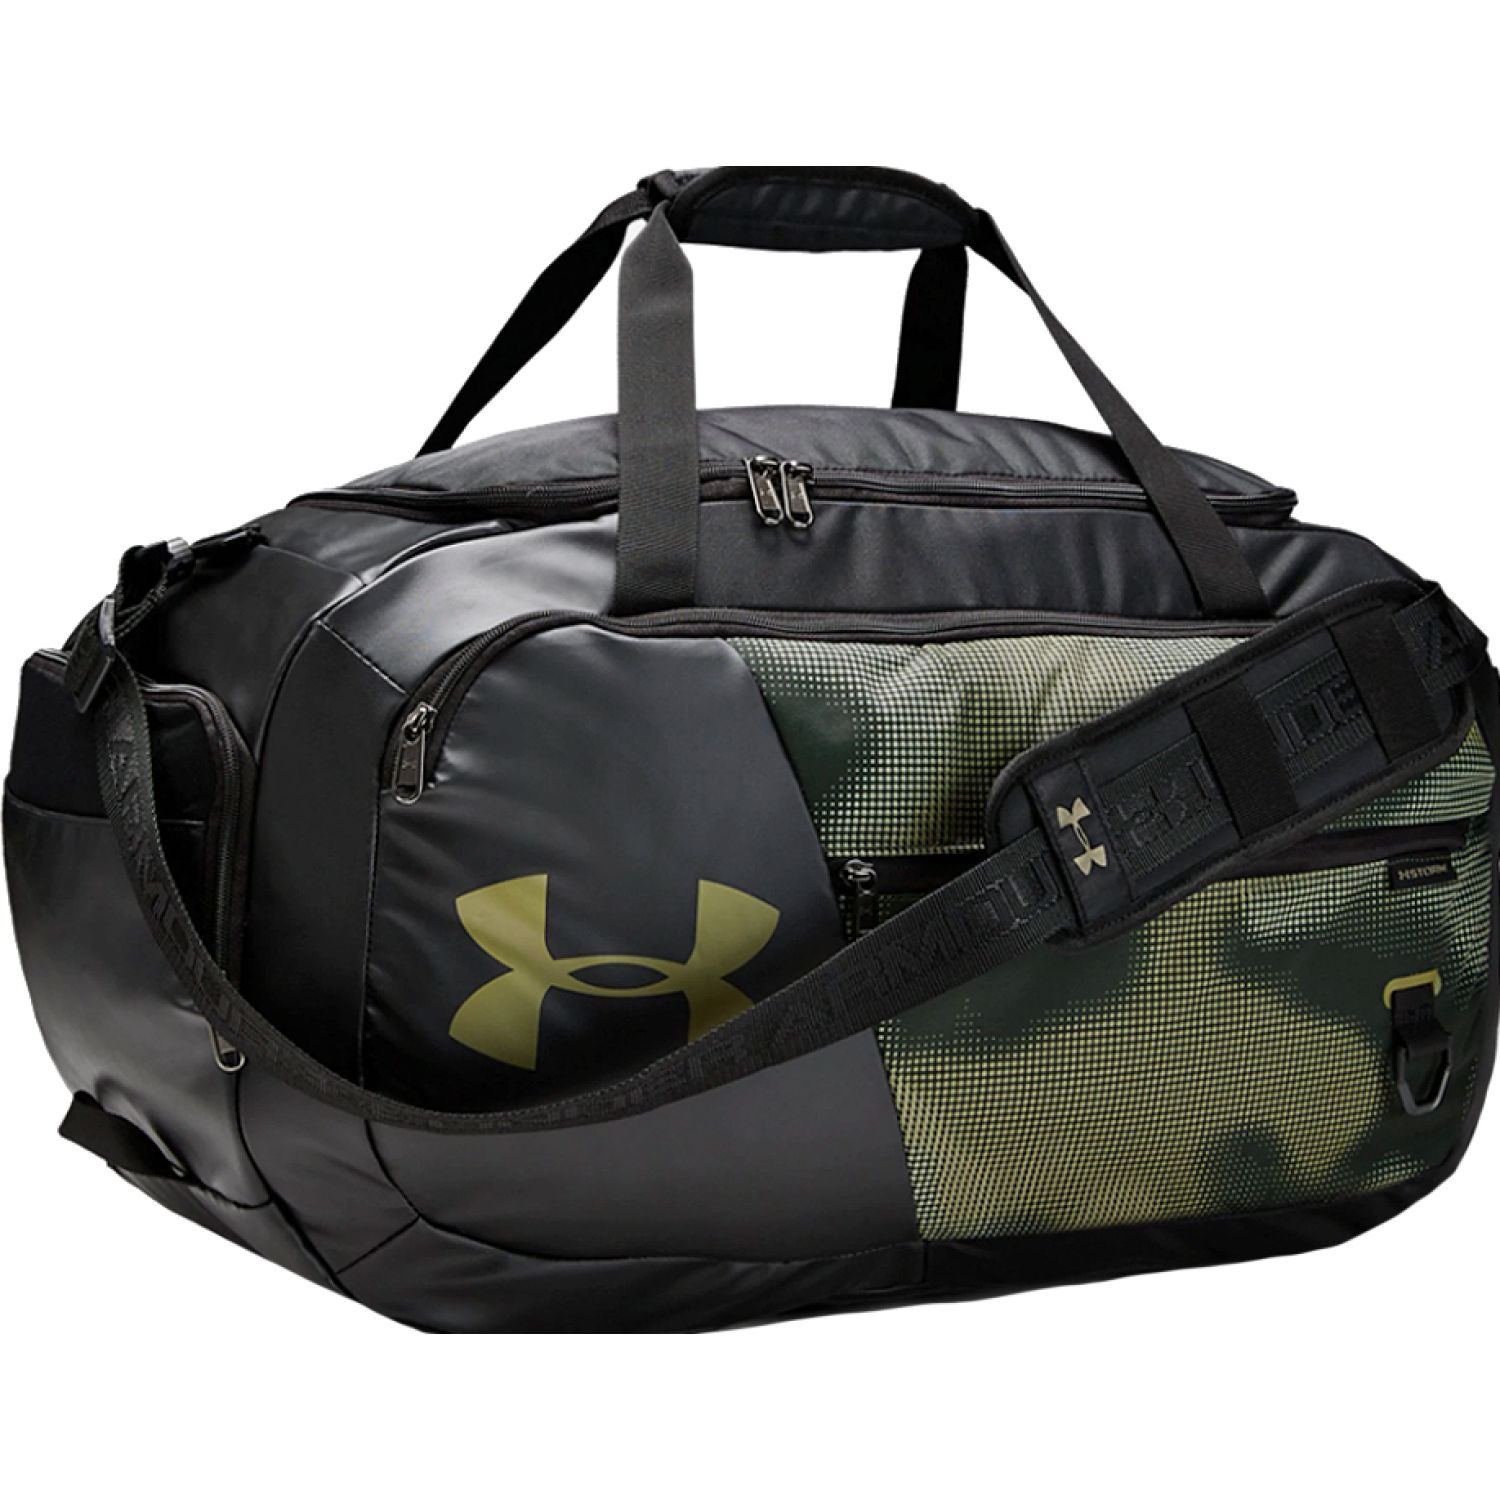 Under Armour Undeniable Duffel 4.0 MD Negro / verde Bolsos de gimnasio